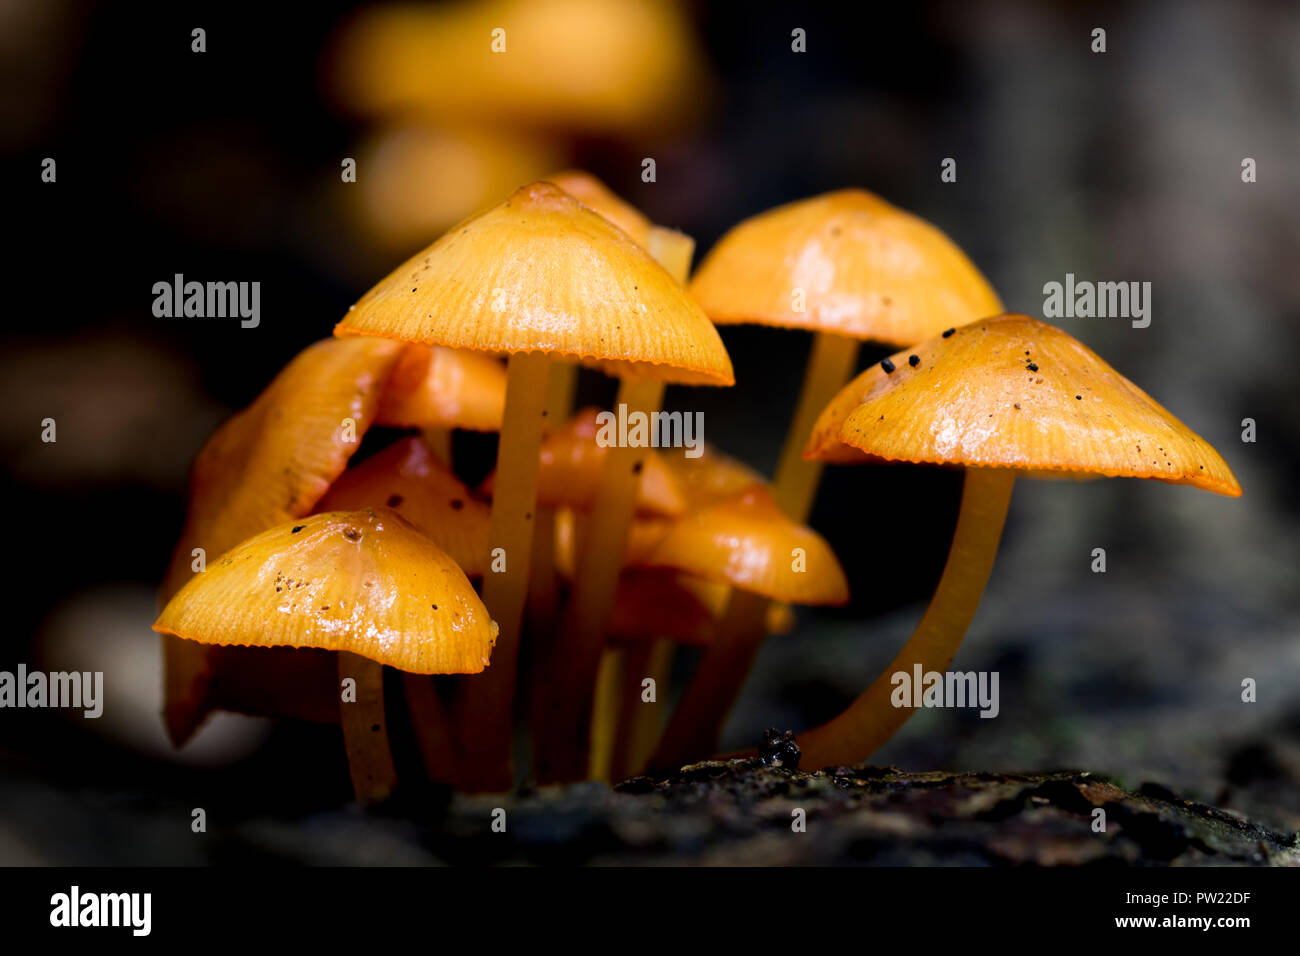 Extreme close up of tiny orange Mushrooms on the forest floor. Autumn fungi growing outdoors in nature. Stems and caps of Mycena Leaiana mushrooms. - Stock Image